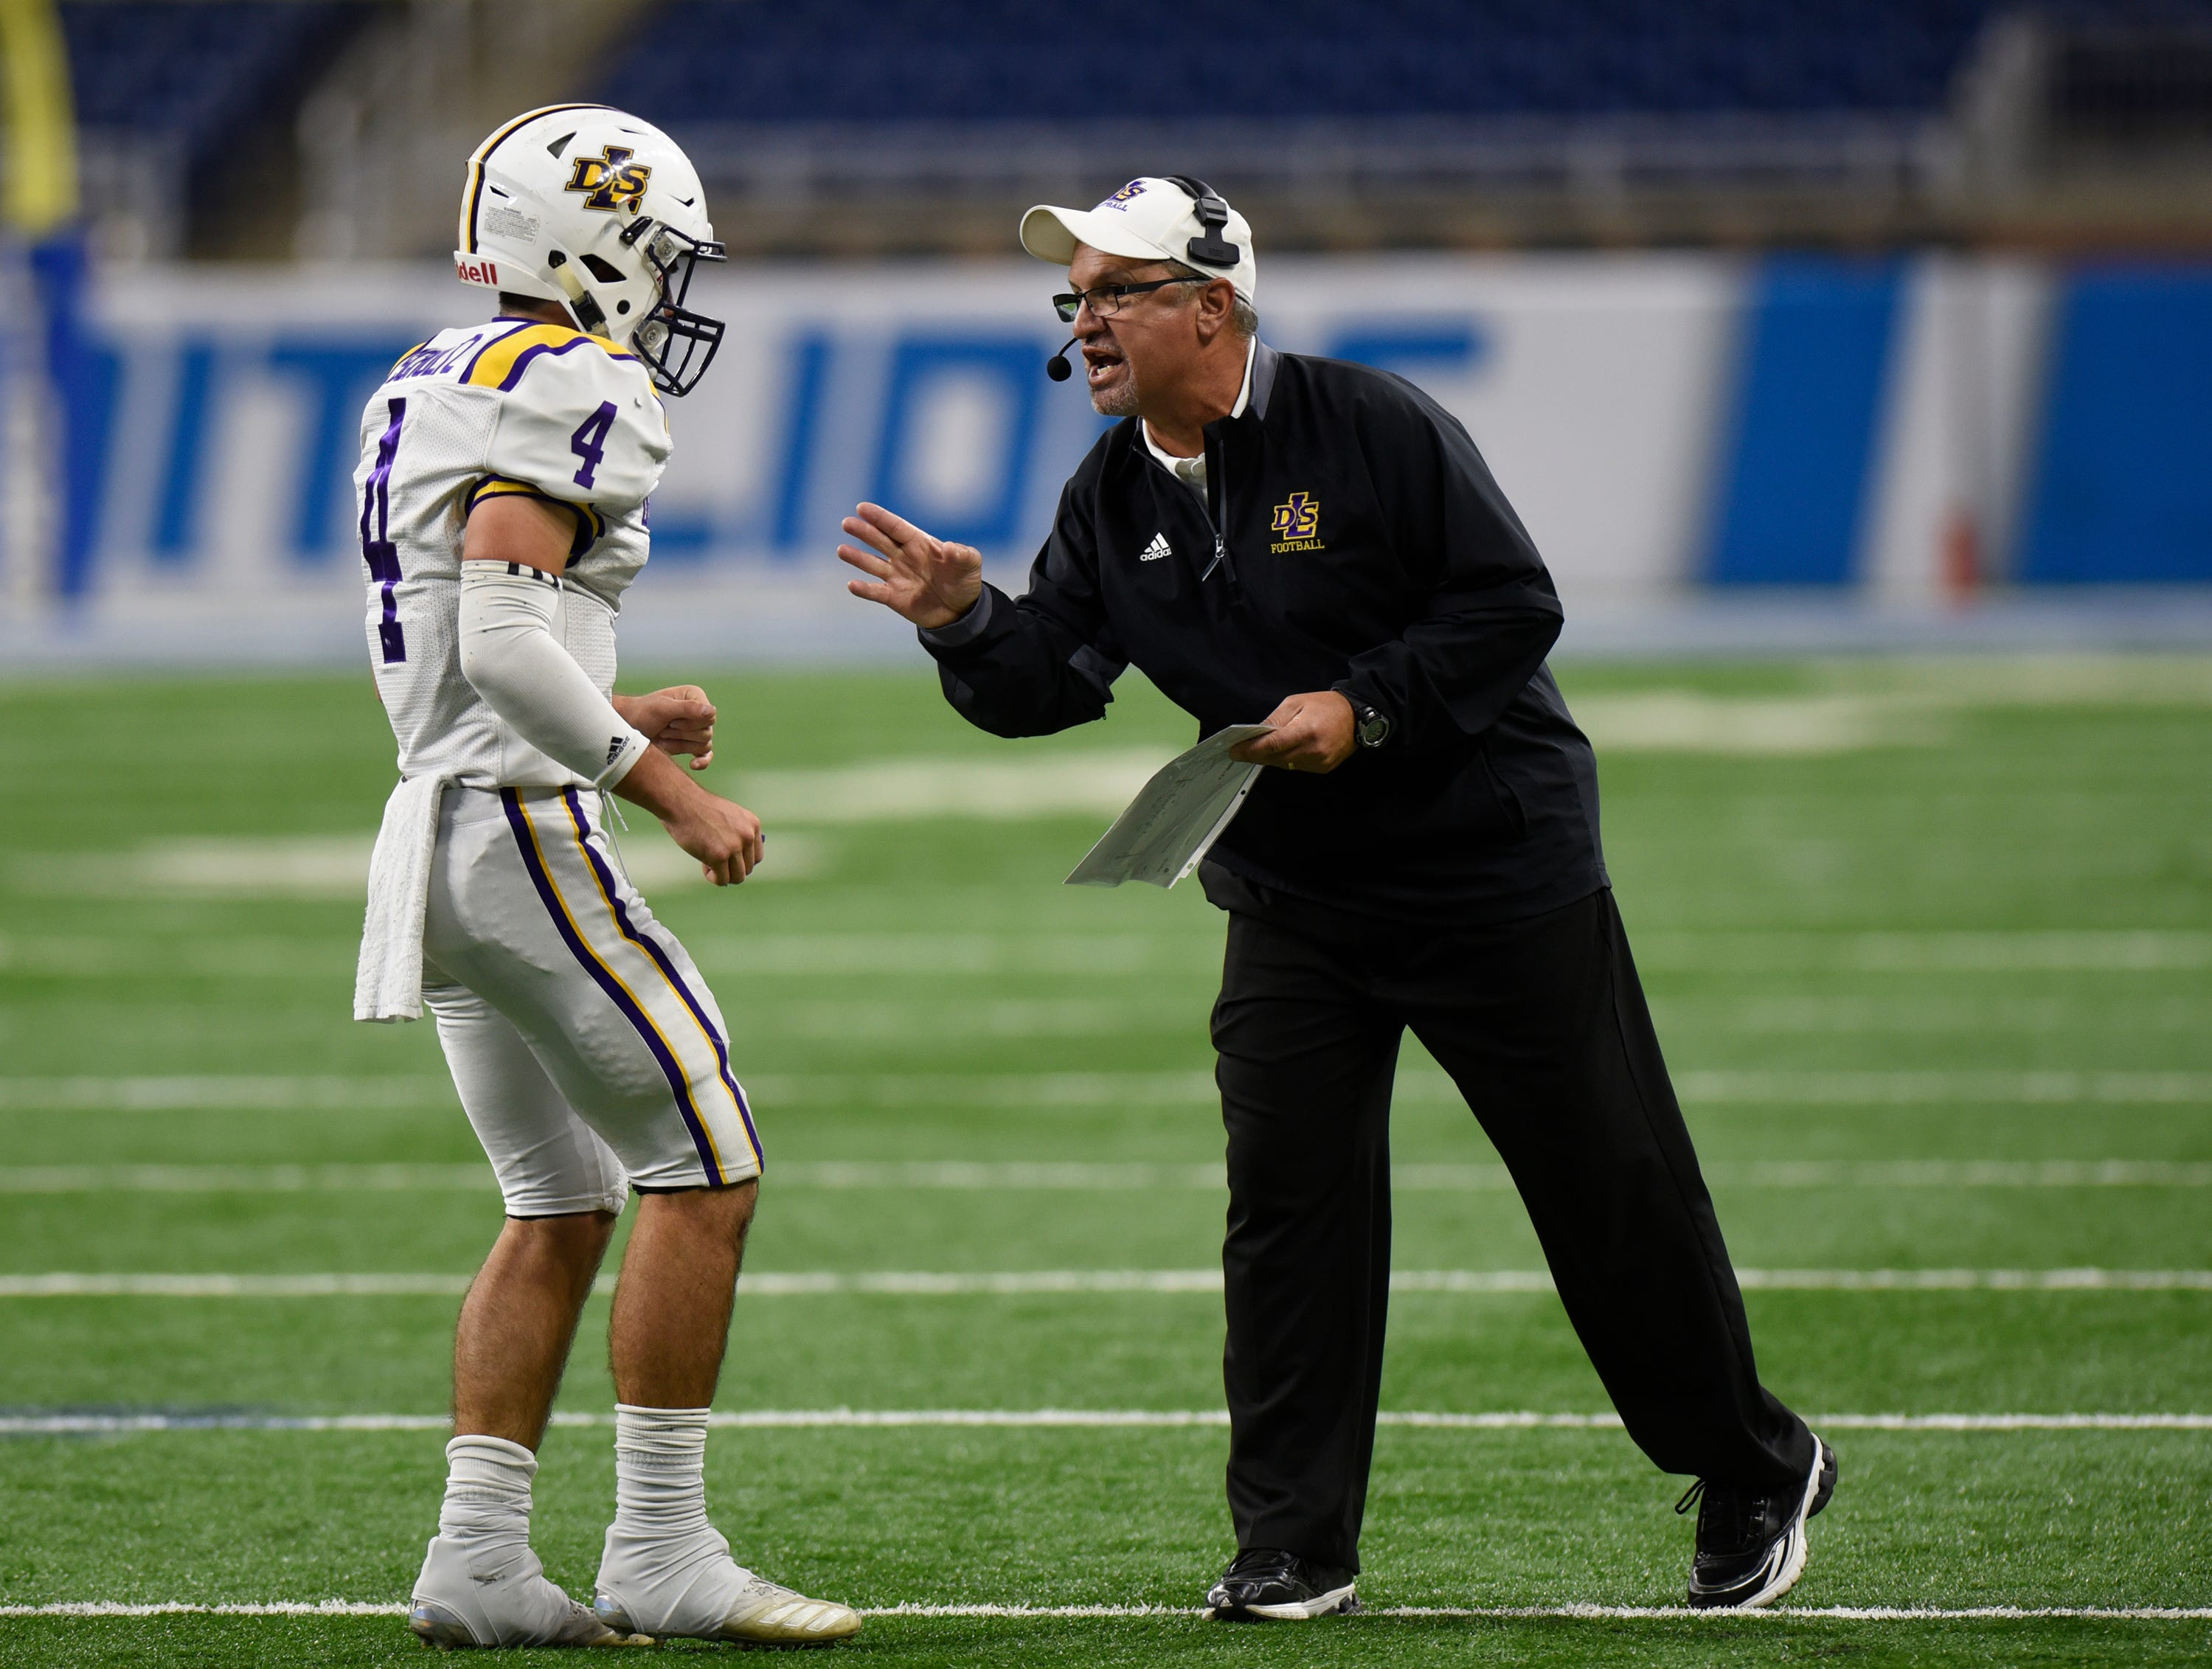 Warren De La Salle football head coach Mike Giannone gives a play to quarterback back Nolan Schultz (4) during Catholic League Prep Bowl AB Division championship game at Ford Field Oct. 20, 2018.